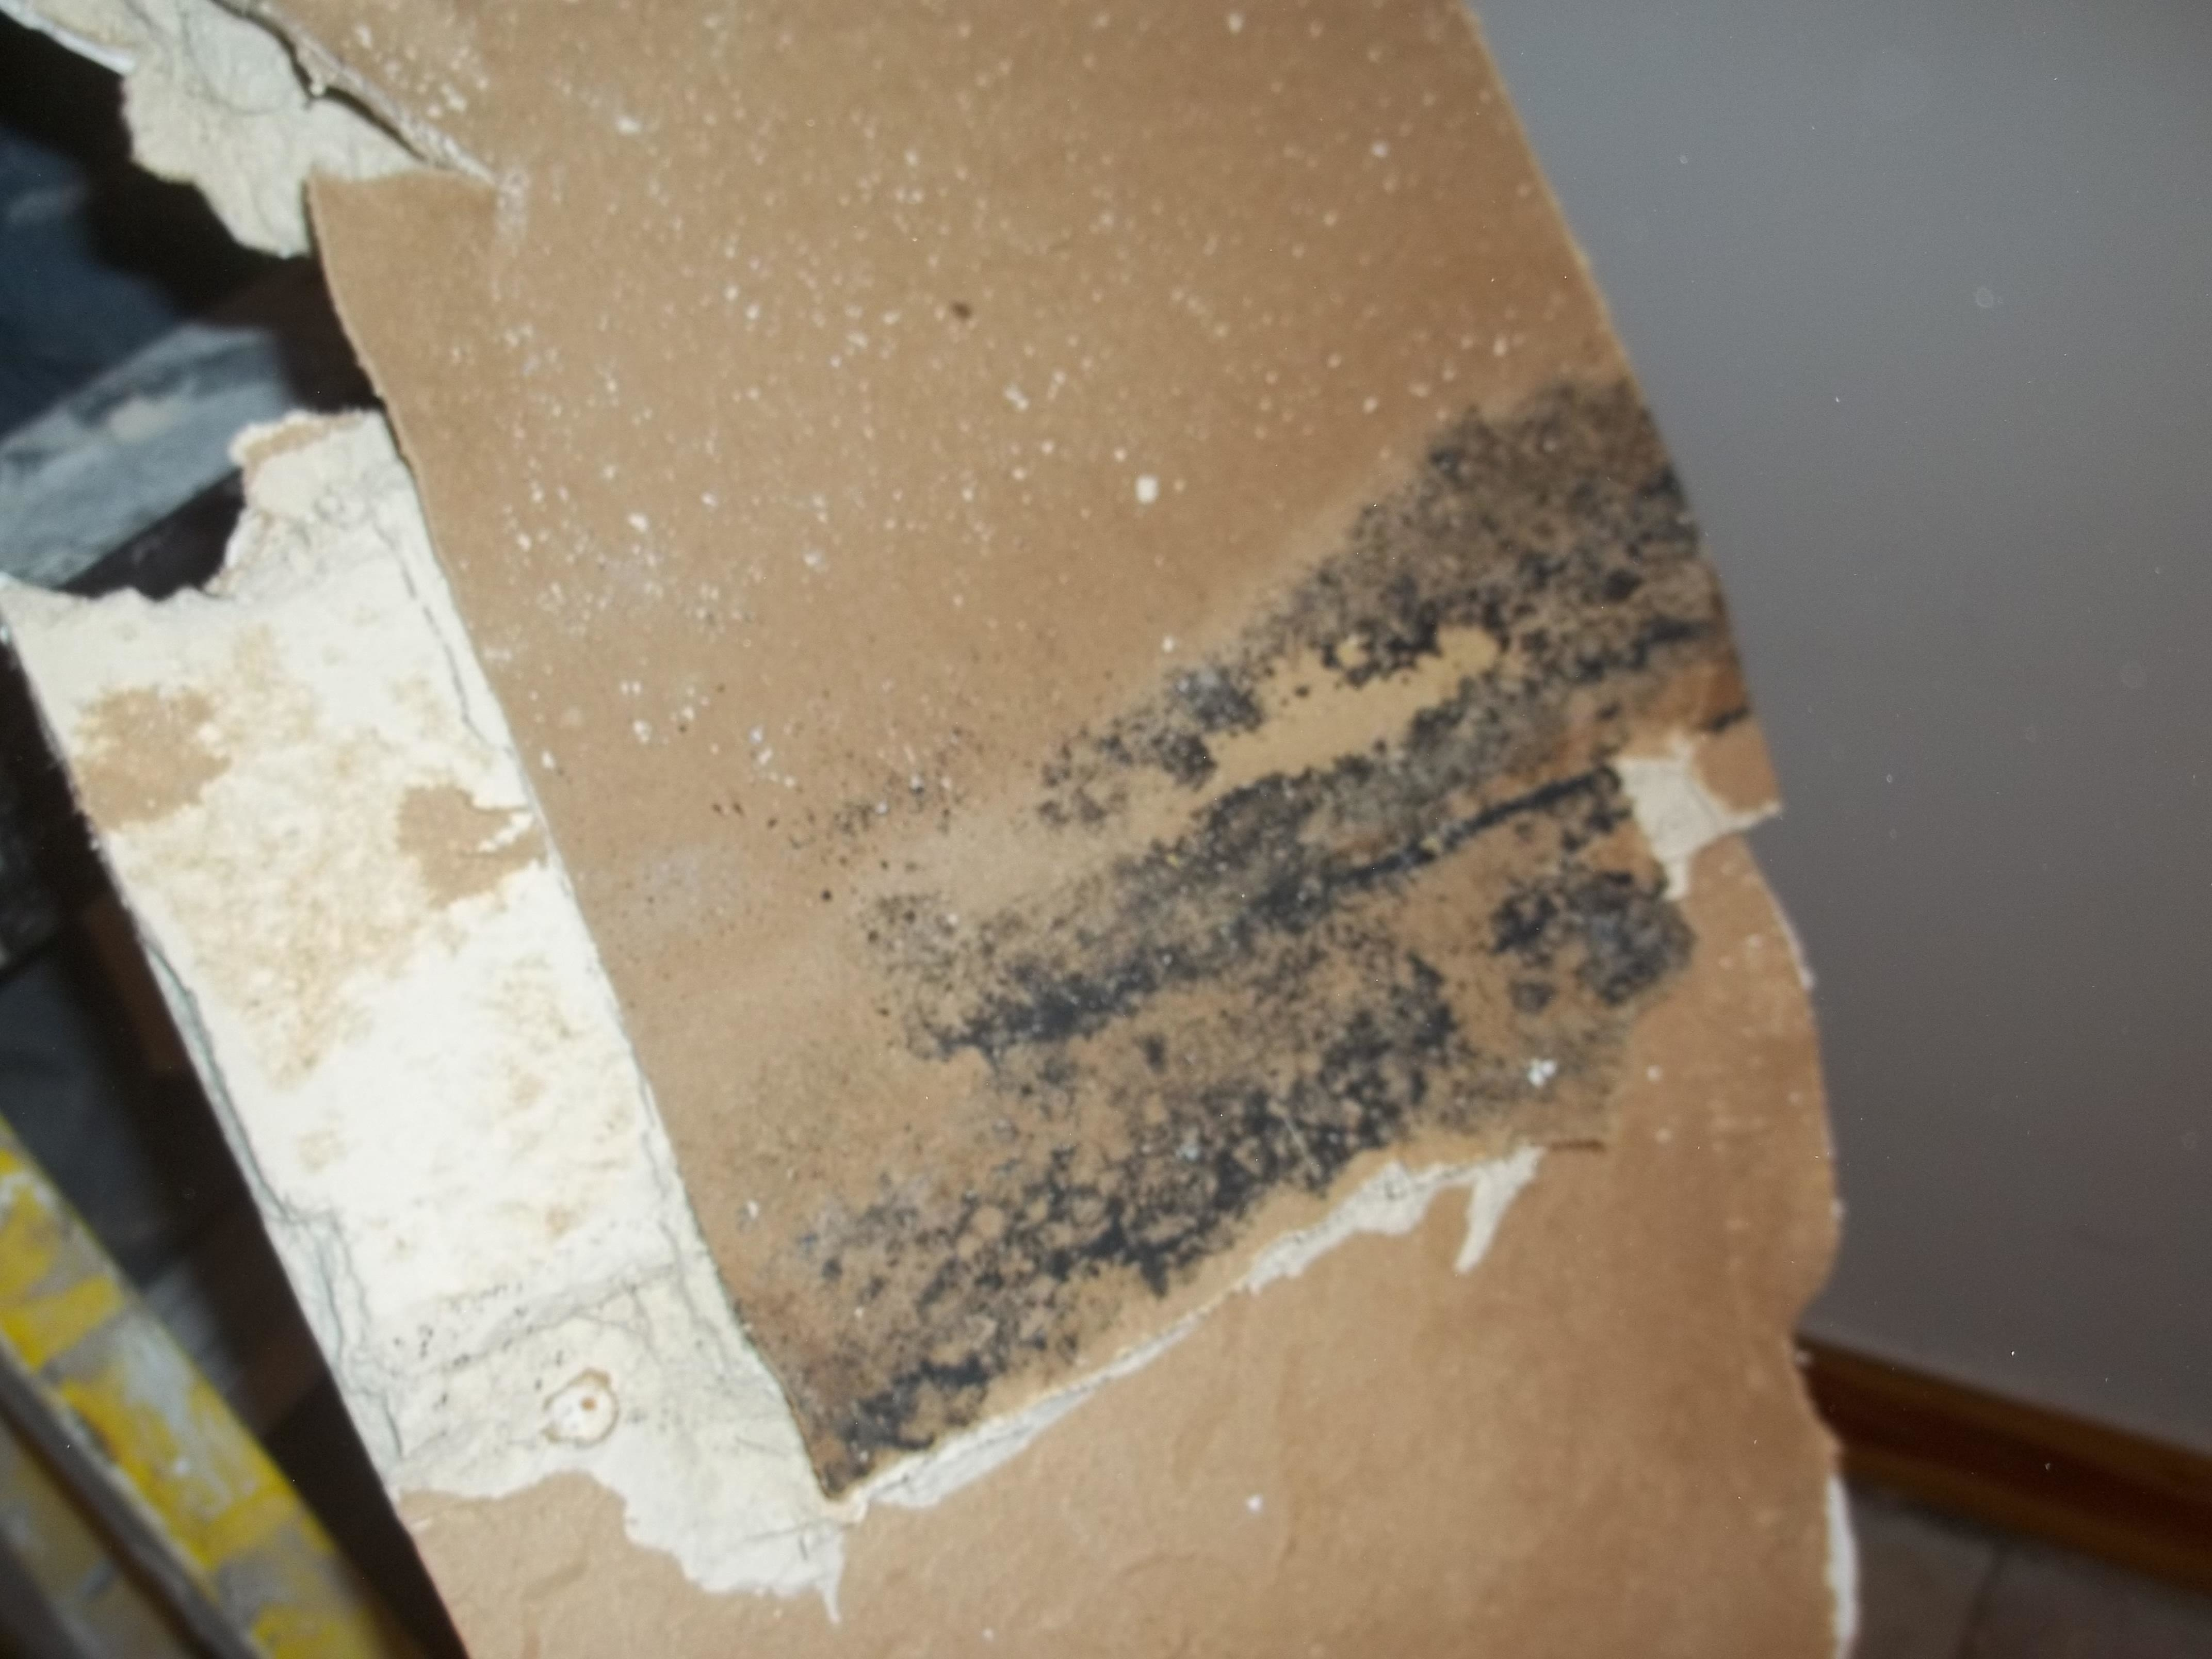 Anderson Restoration & Emergency Services - Water Damage & Mold Remediation image 8